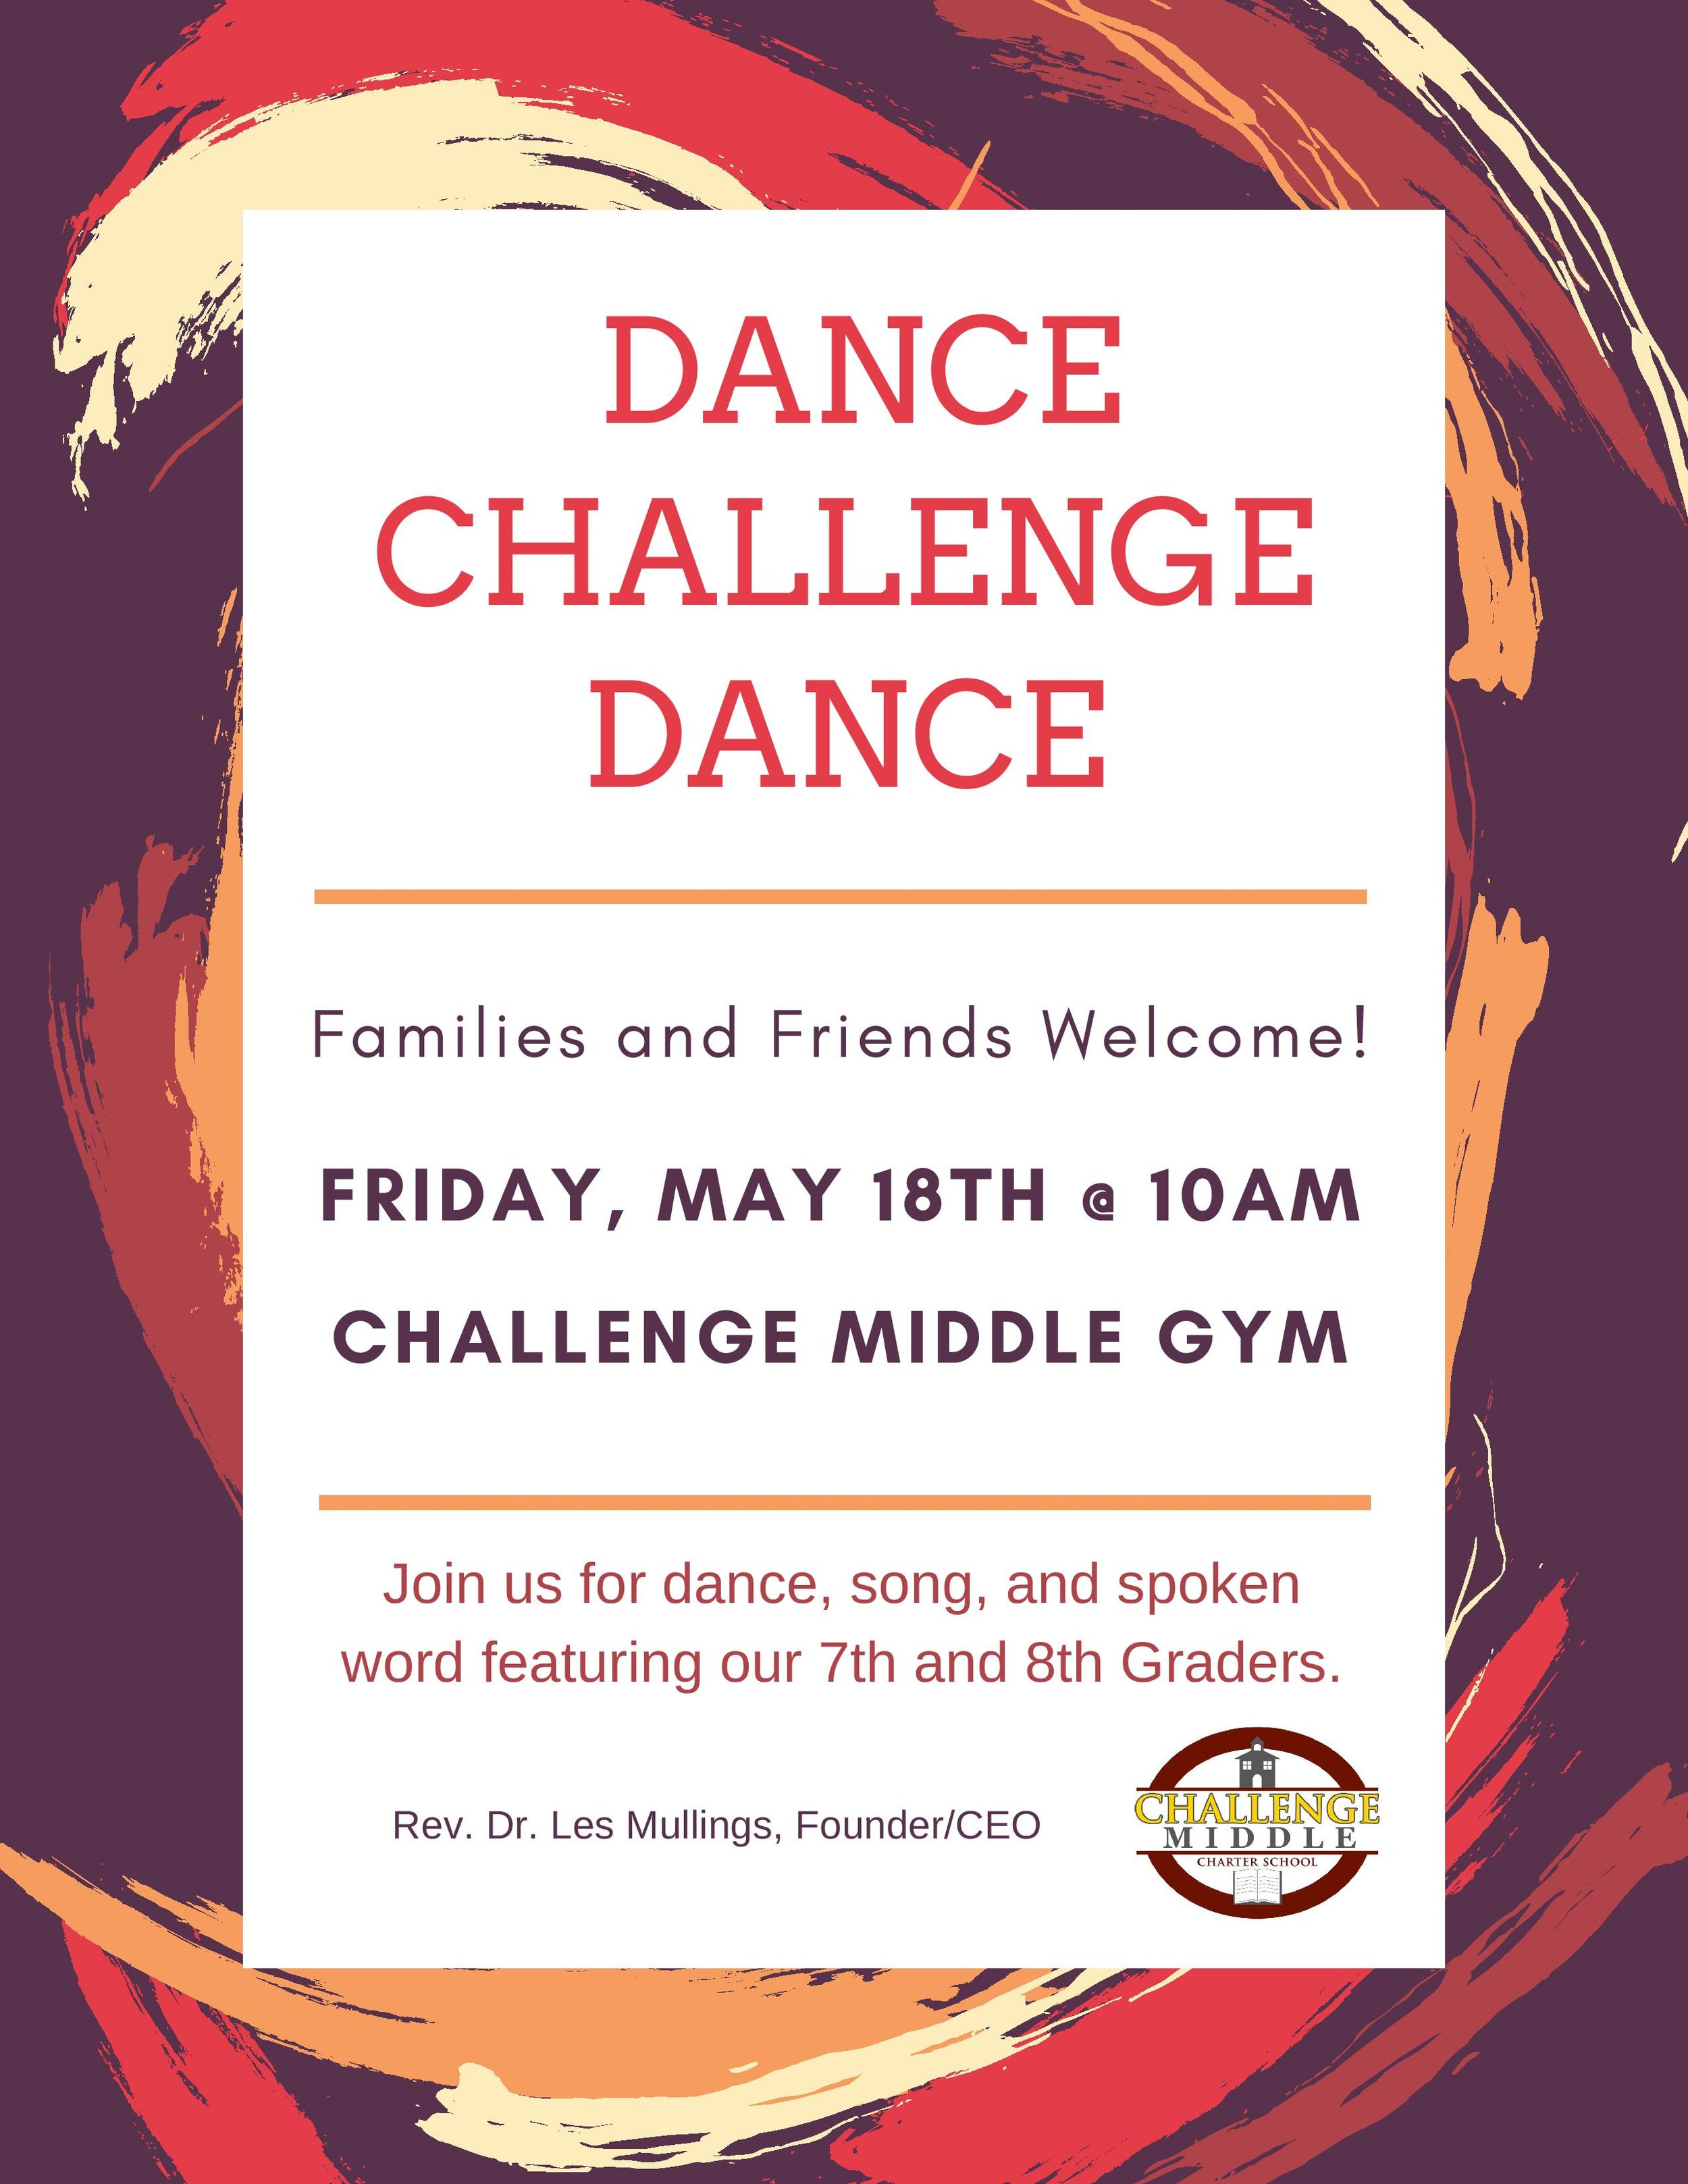 Dance Challenge Dance - We welcomed our families and friends to experience some